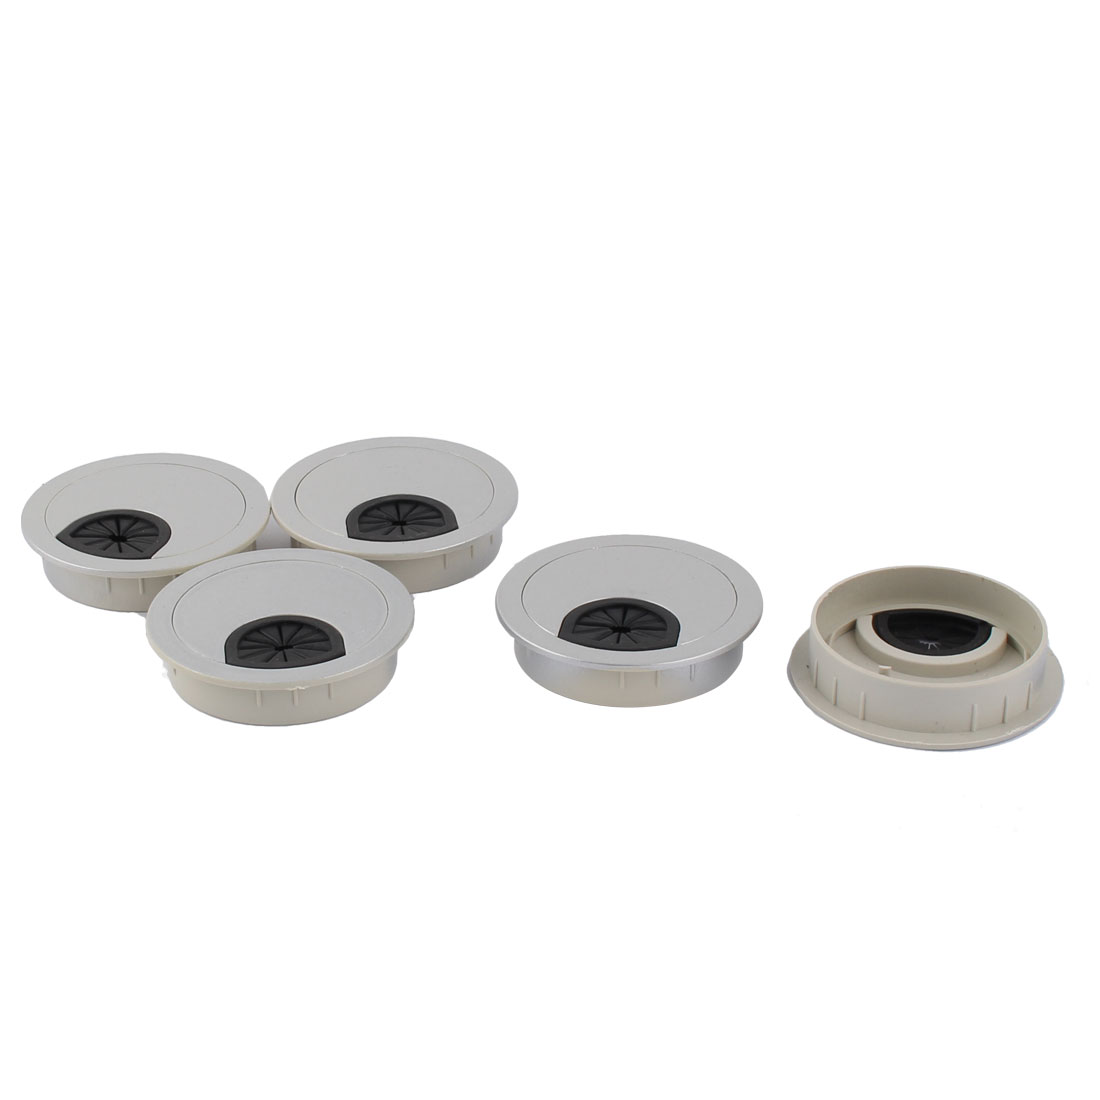 Table Computer Plastic Grommet Cable Tidy Outlet Port Surface Wires Hole Cover Gray 5pcs